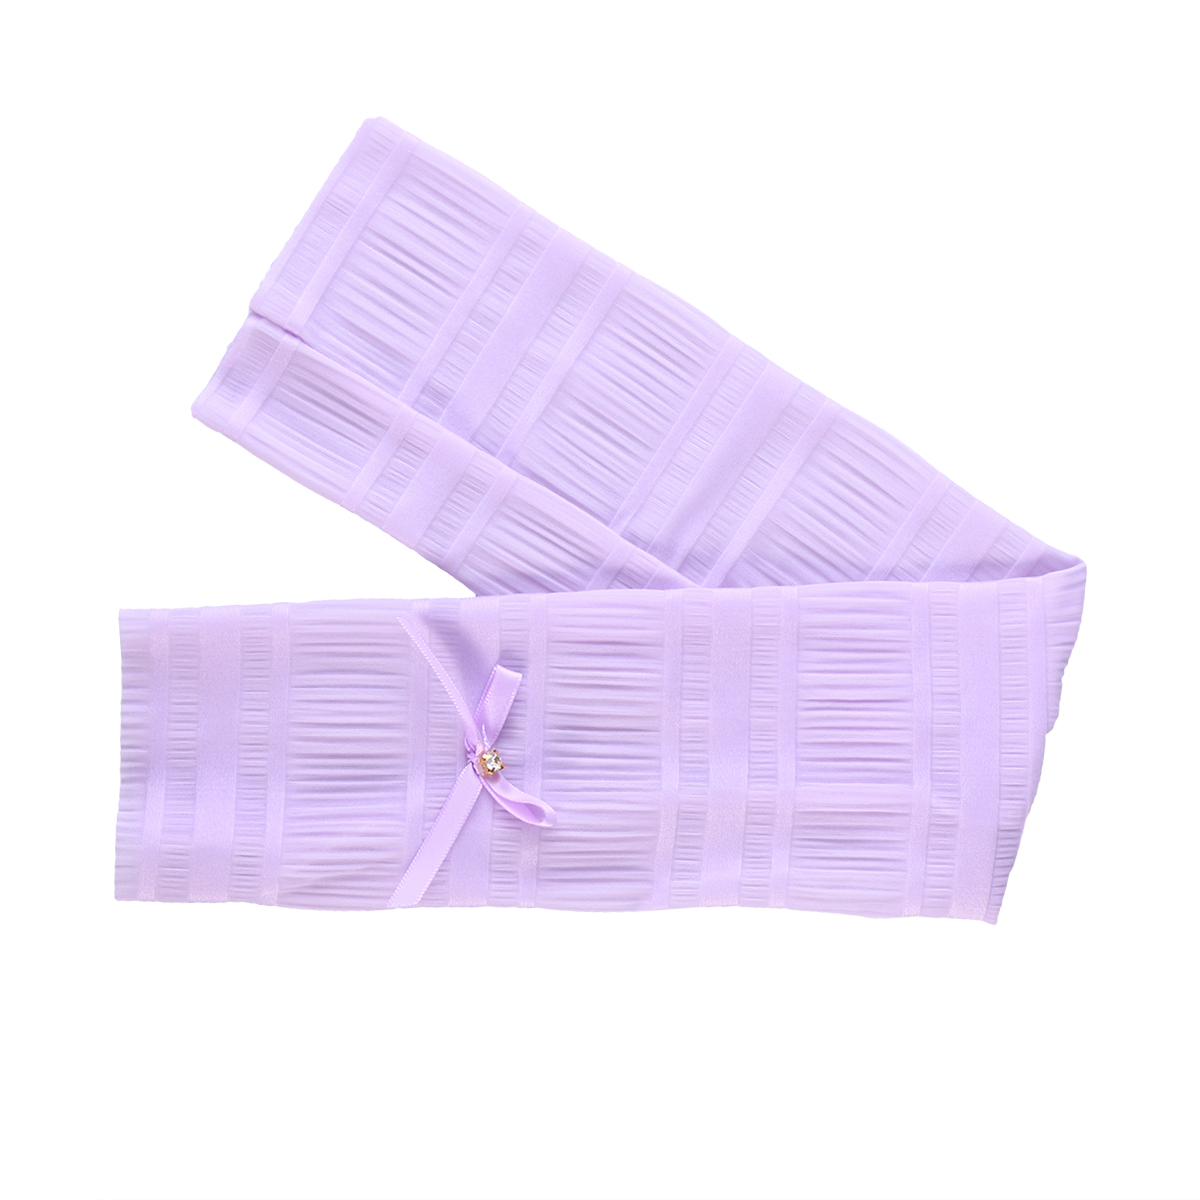 1Pair Lace Diamond Casual Breathable Stretchy Sports Arm Cover Sleeve Elbow Protector Elastic Elbow Brace For Sun Protection